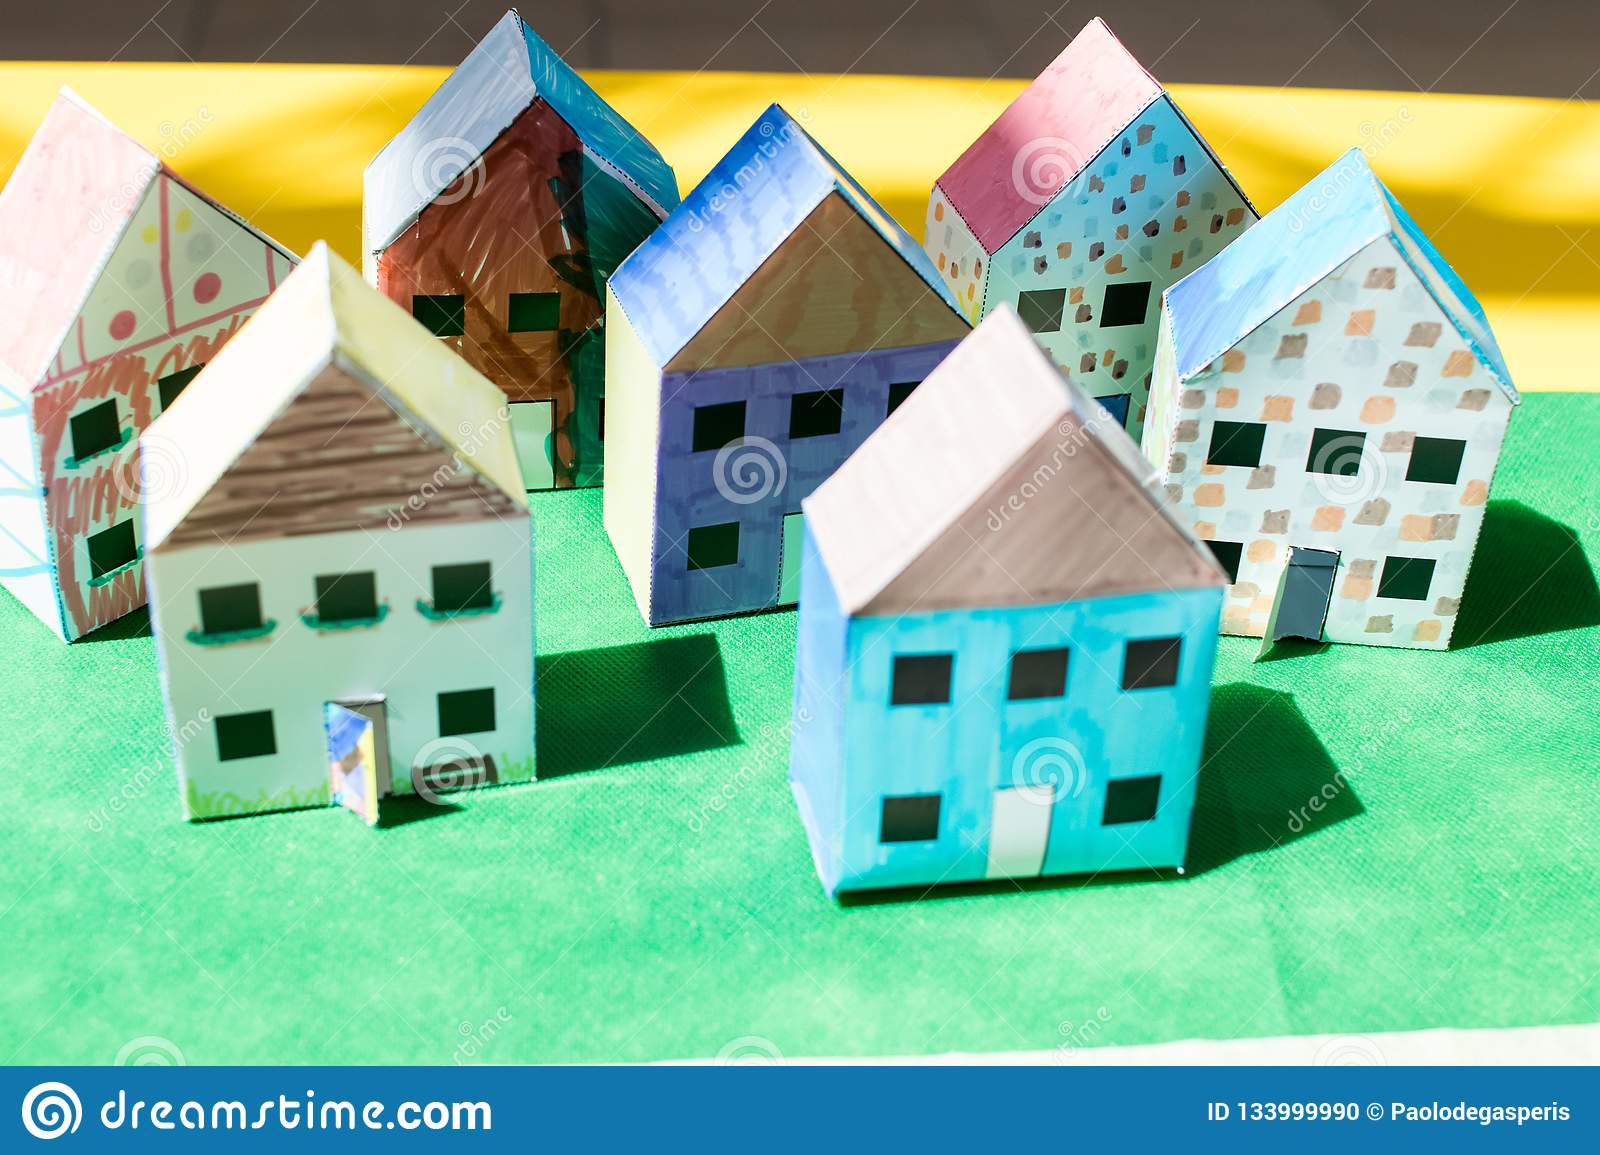 Models Of Paper Houses Cut Out And Colored By Children